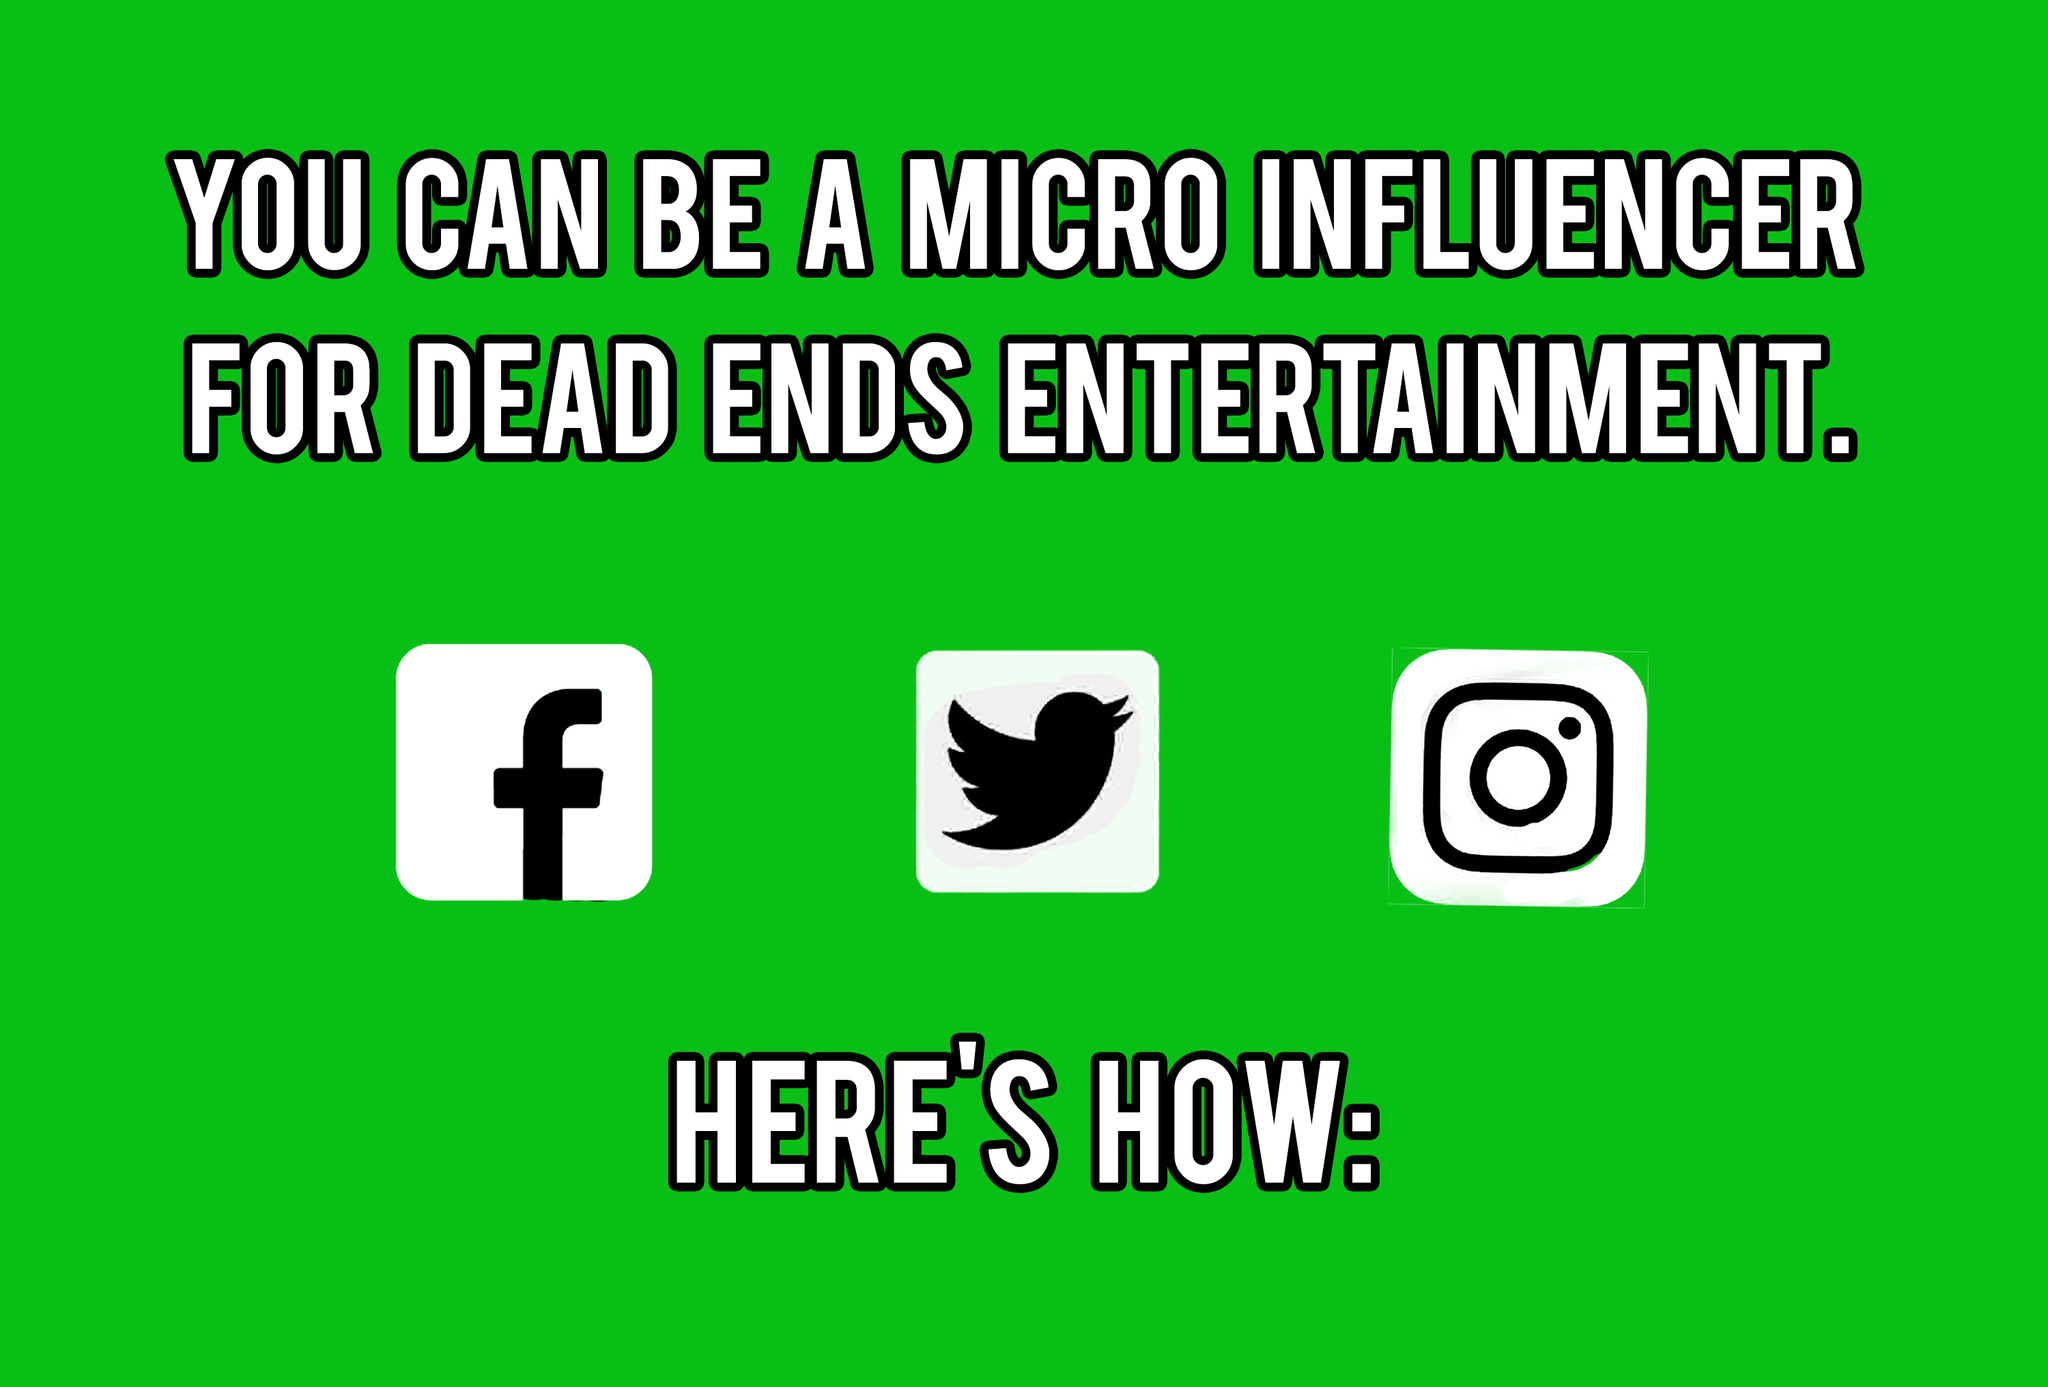 Be a Micro Influencer for Dead Ends Entertainment